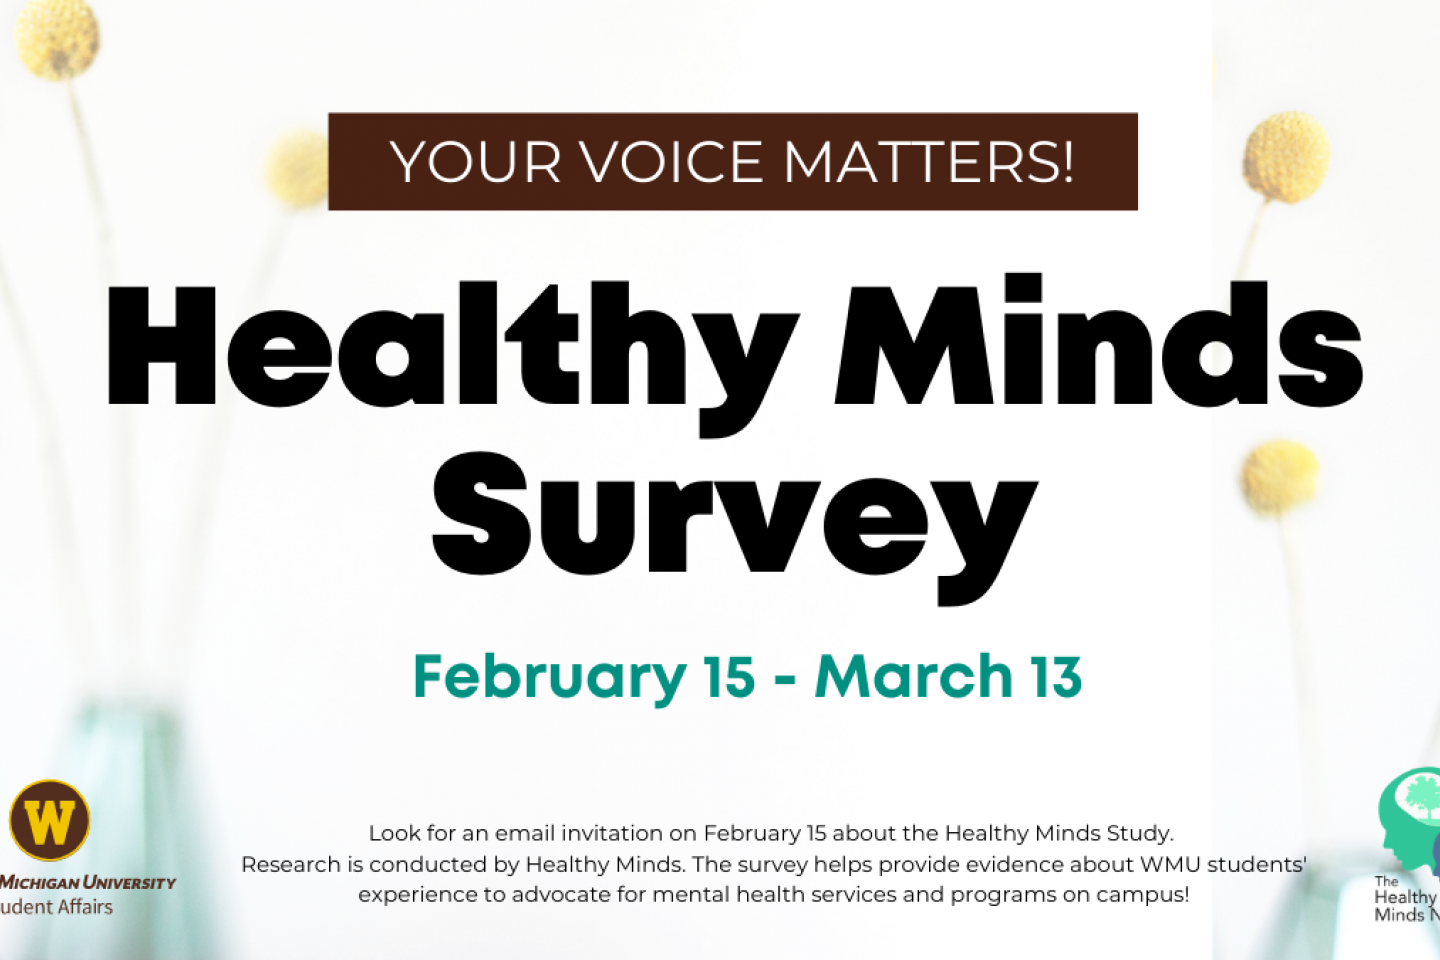 Your voice matters! Healthy Minds Survey, February 15 to March 13. Look for an email invitation on February 15 about the Healthy Minds Study. Research is conducted by Healthy Minds. The survey helps provide evidence about WMU students' experience to advocate for mental health services and programs on campus!